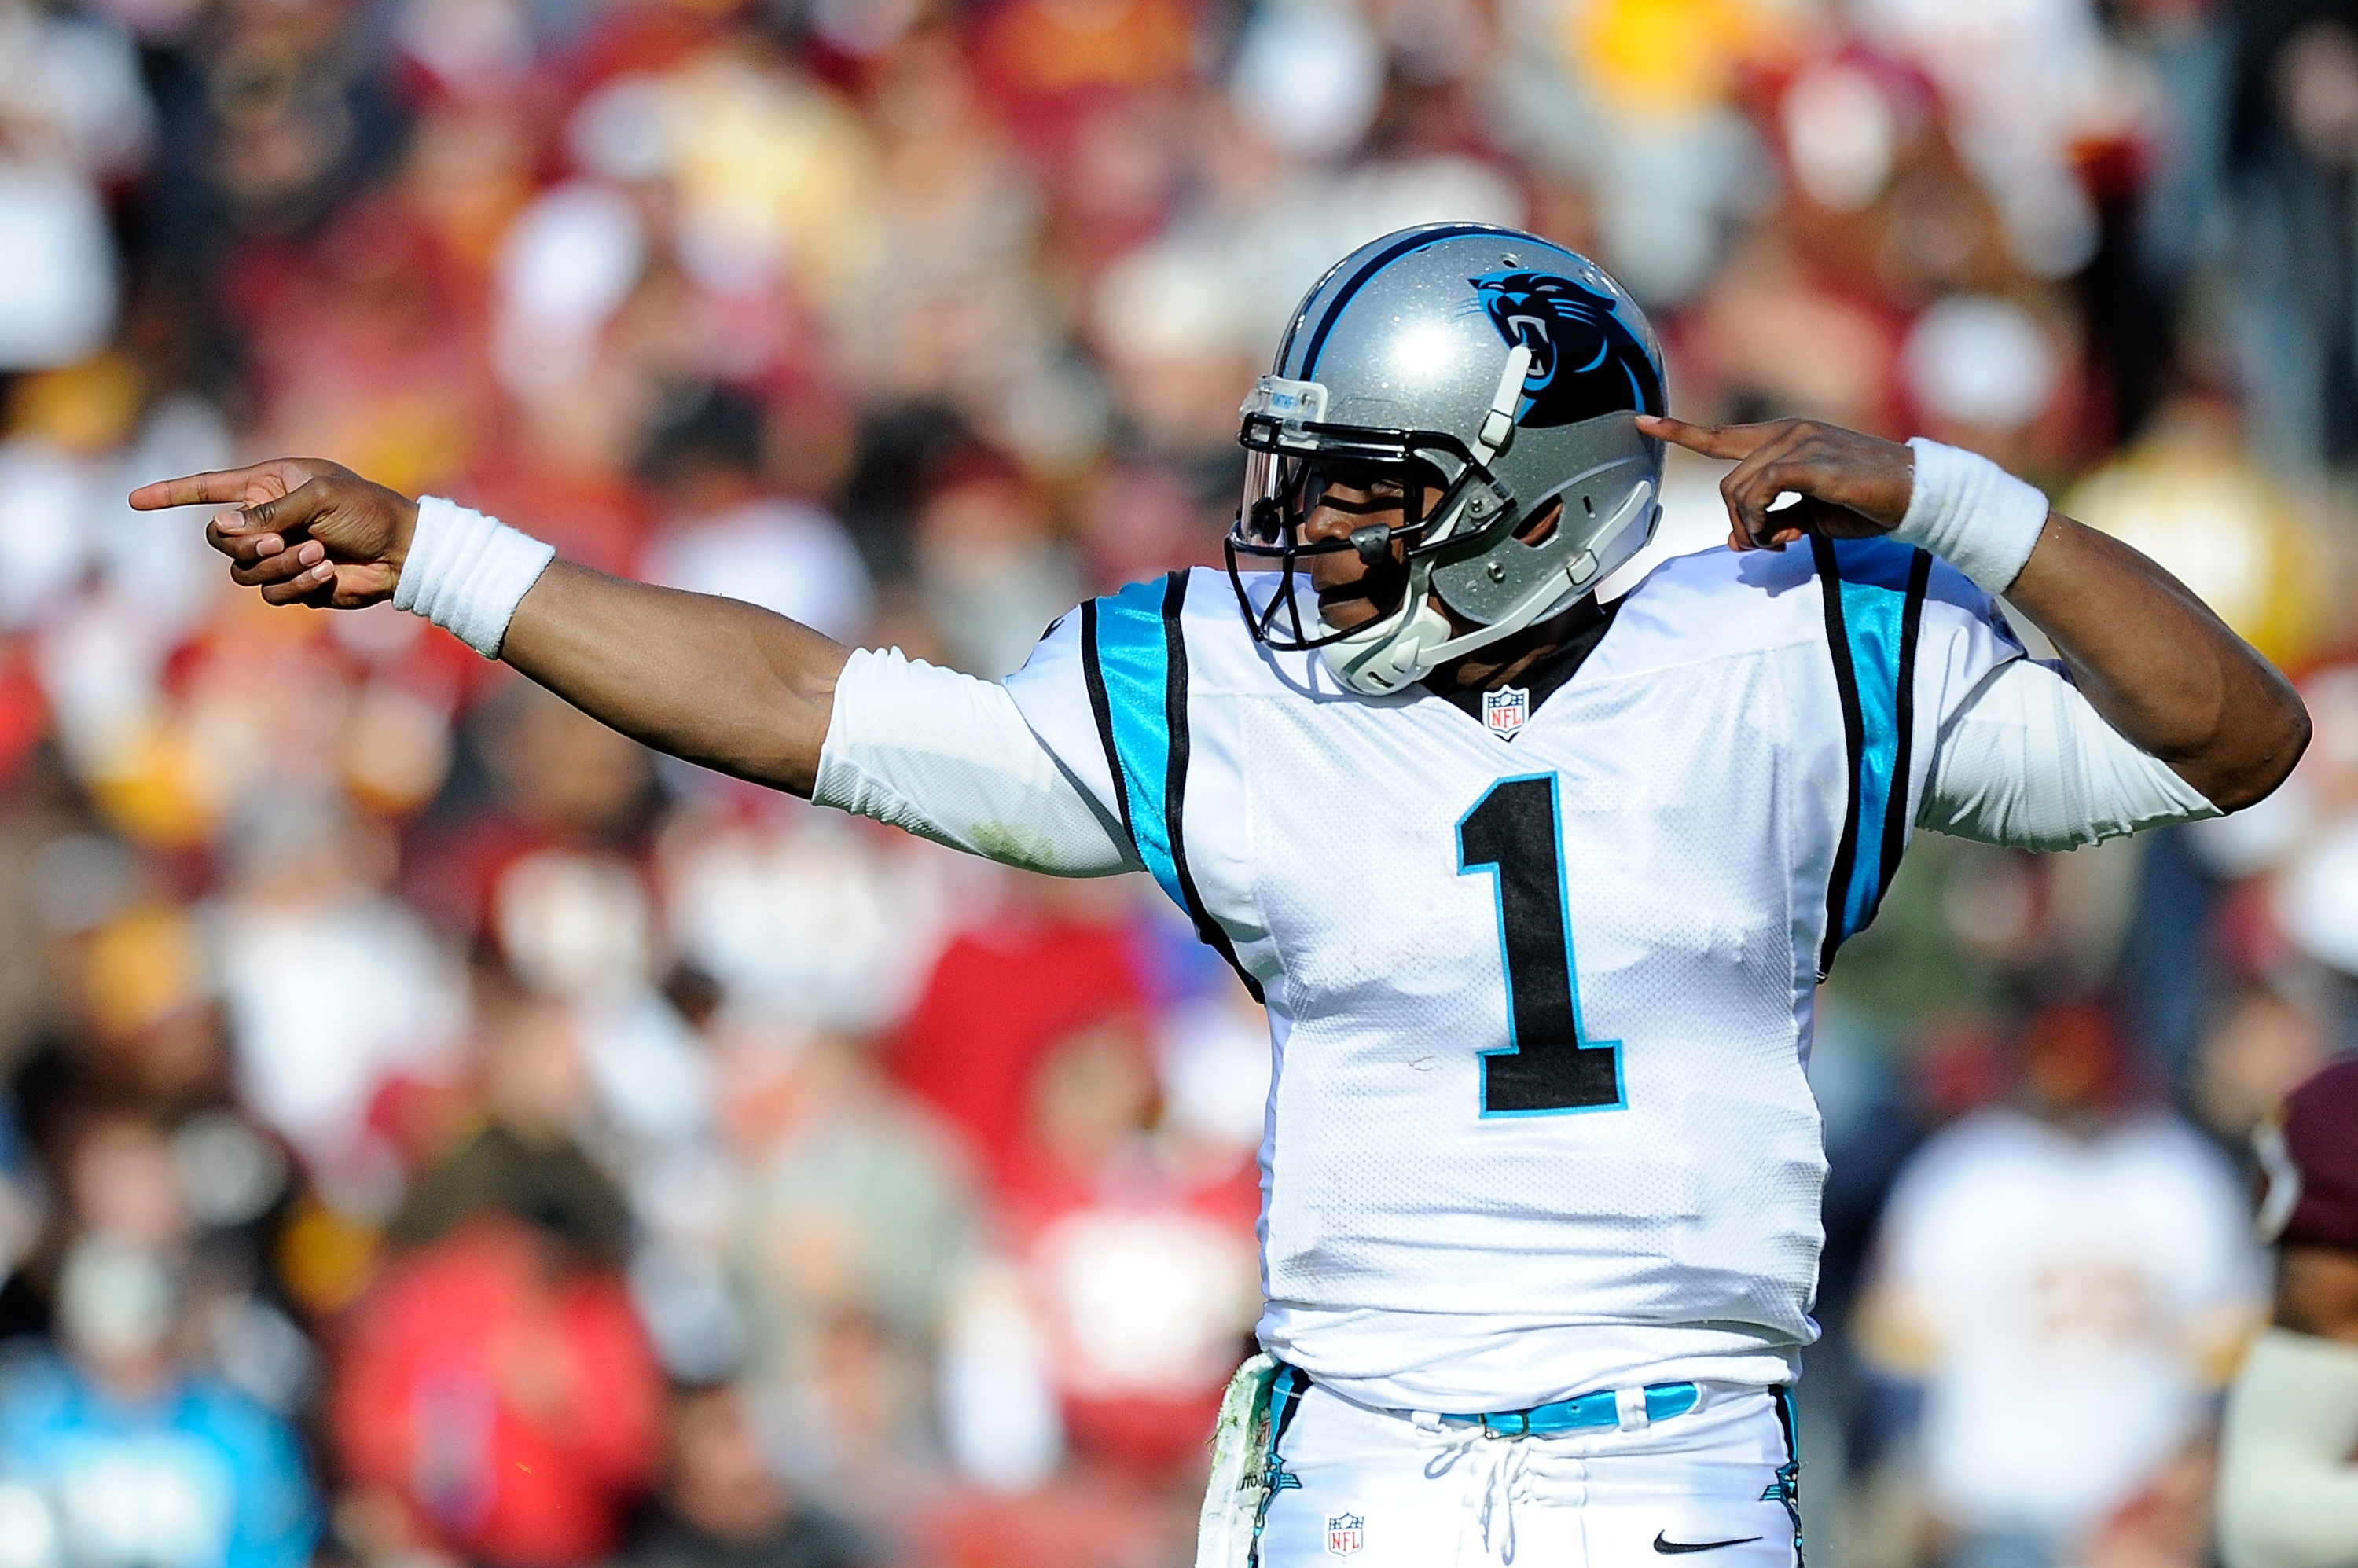 carolina-panthers-v-washington-redskins-20121104-114219-639.jpg